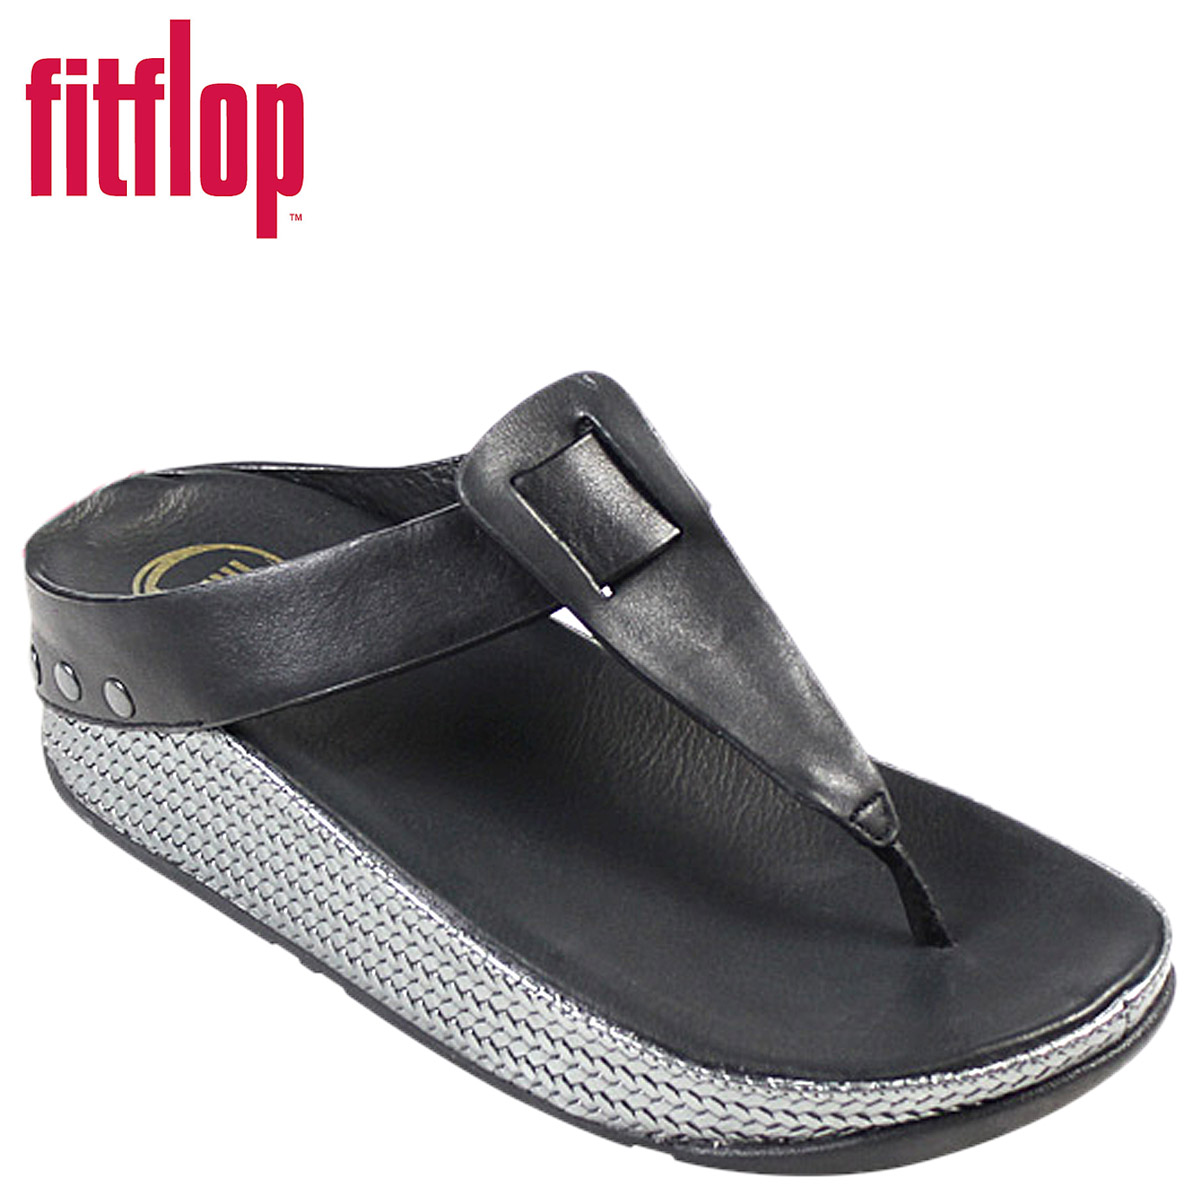 0f04786f16a1d Whats up Sports   SOLD OUT  fit flops FitFlop Ibiza Sandals IBIZA ...